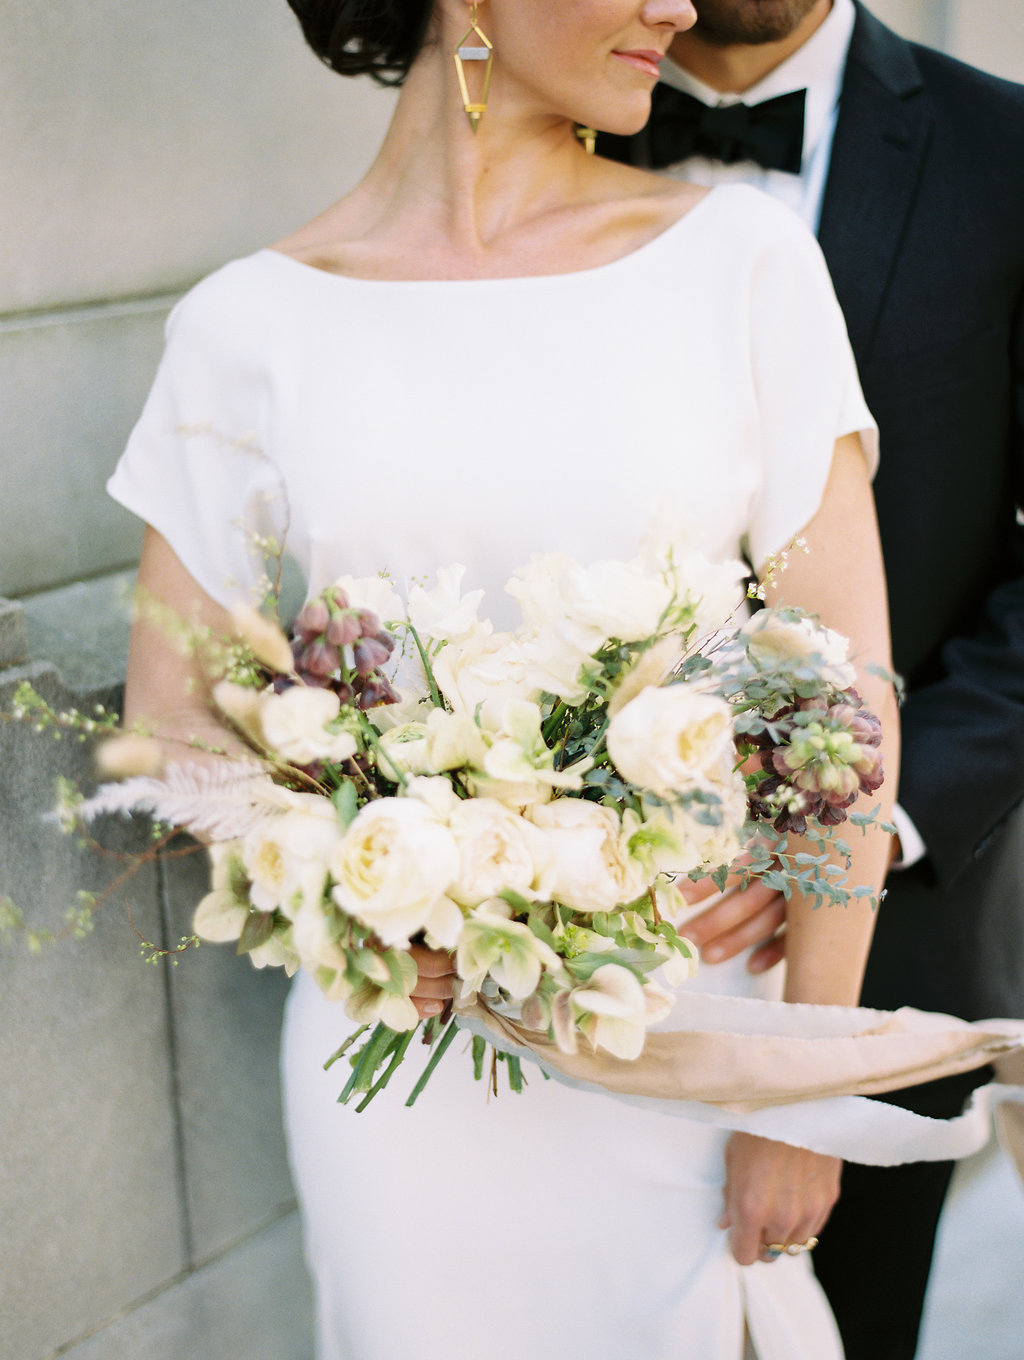 Classic yet Modern Wedding | Savannah, Georgia - A fresh and contemporary design against the backdrop of historical downtown SavannahPublished in Once Wed